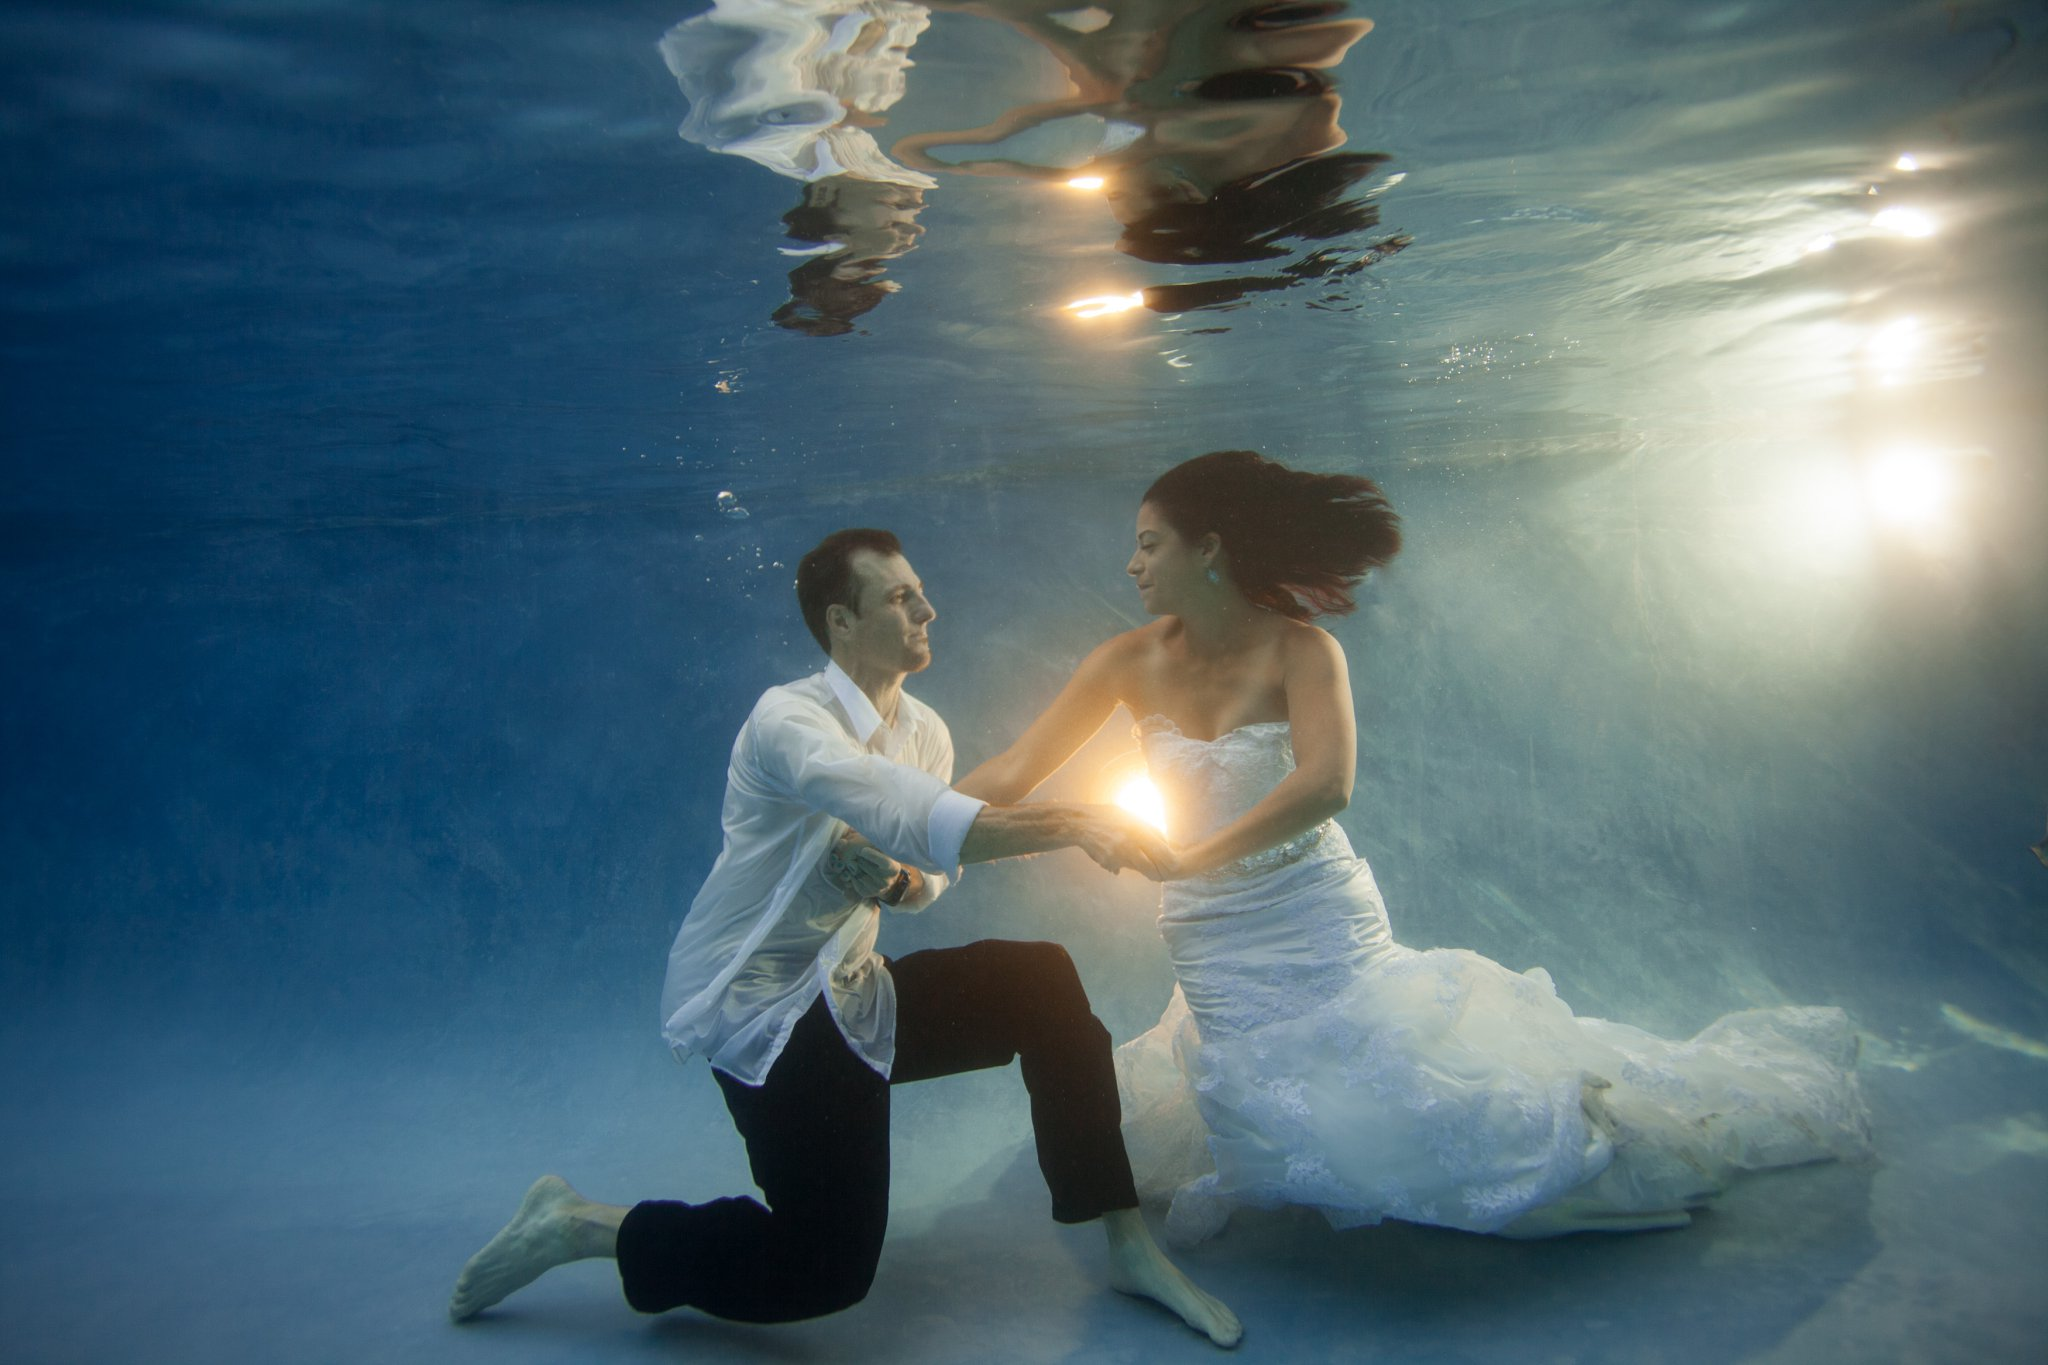 Arizona underwater trash the dress photos in a pool